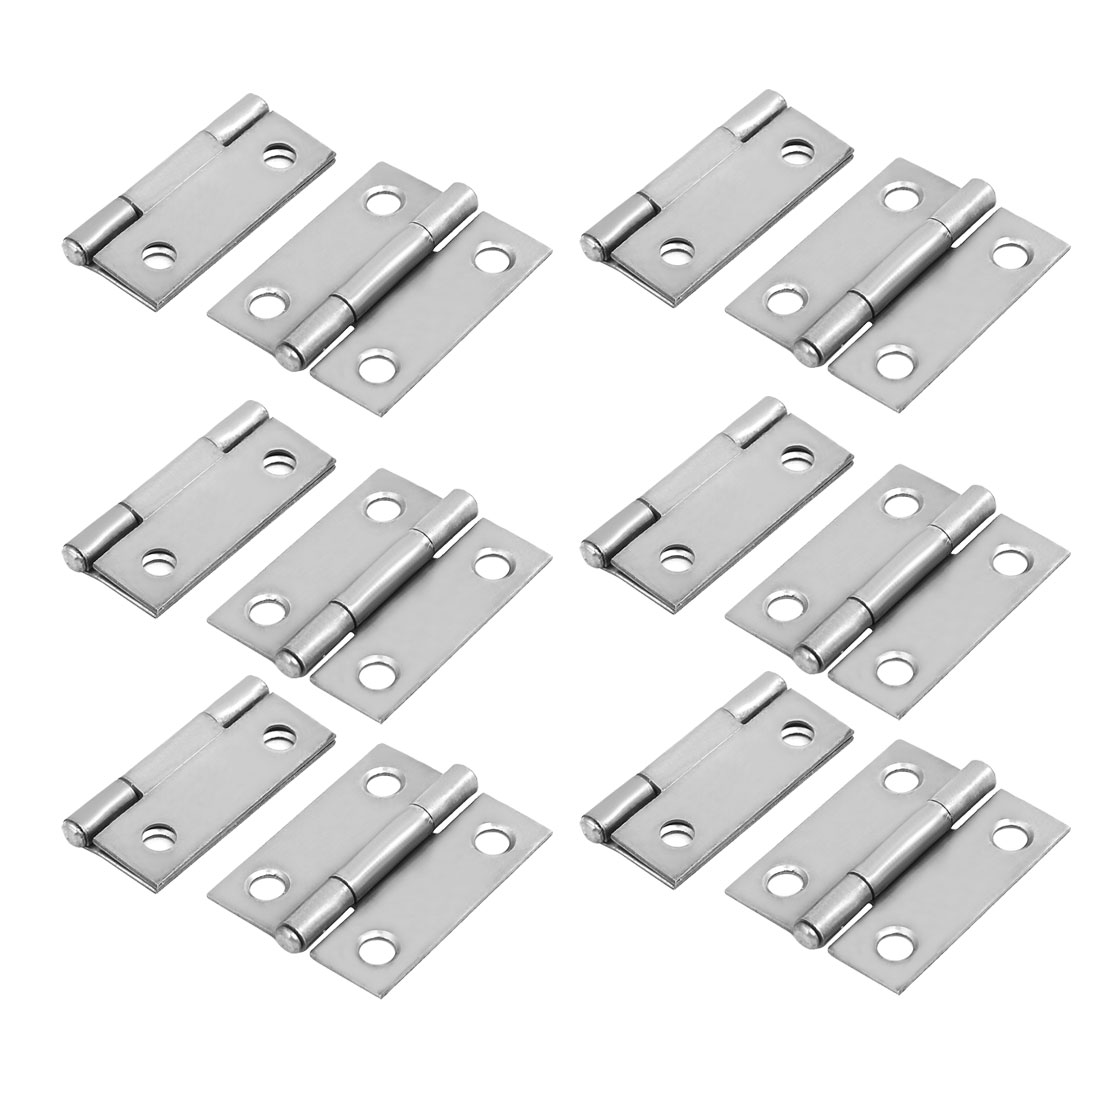 38mm Length Cupboard Cabinet Folding Iron Butt Hinge Silver Tone 12PCS